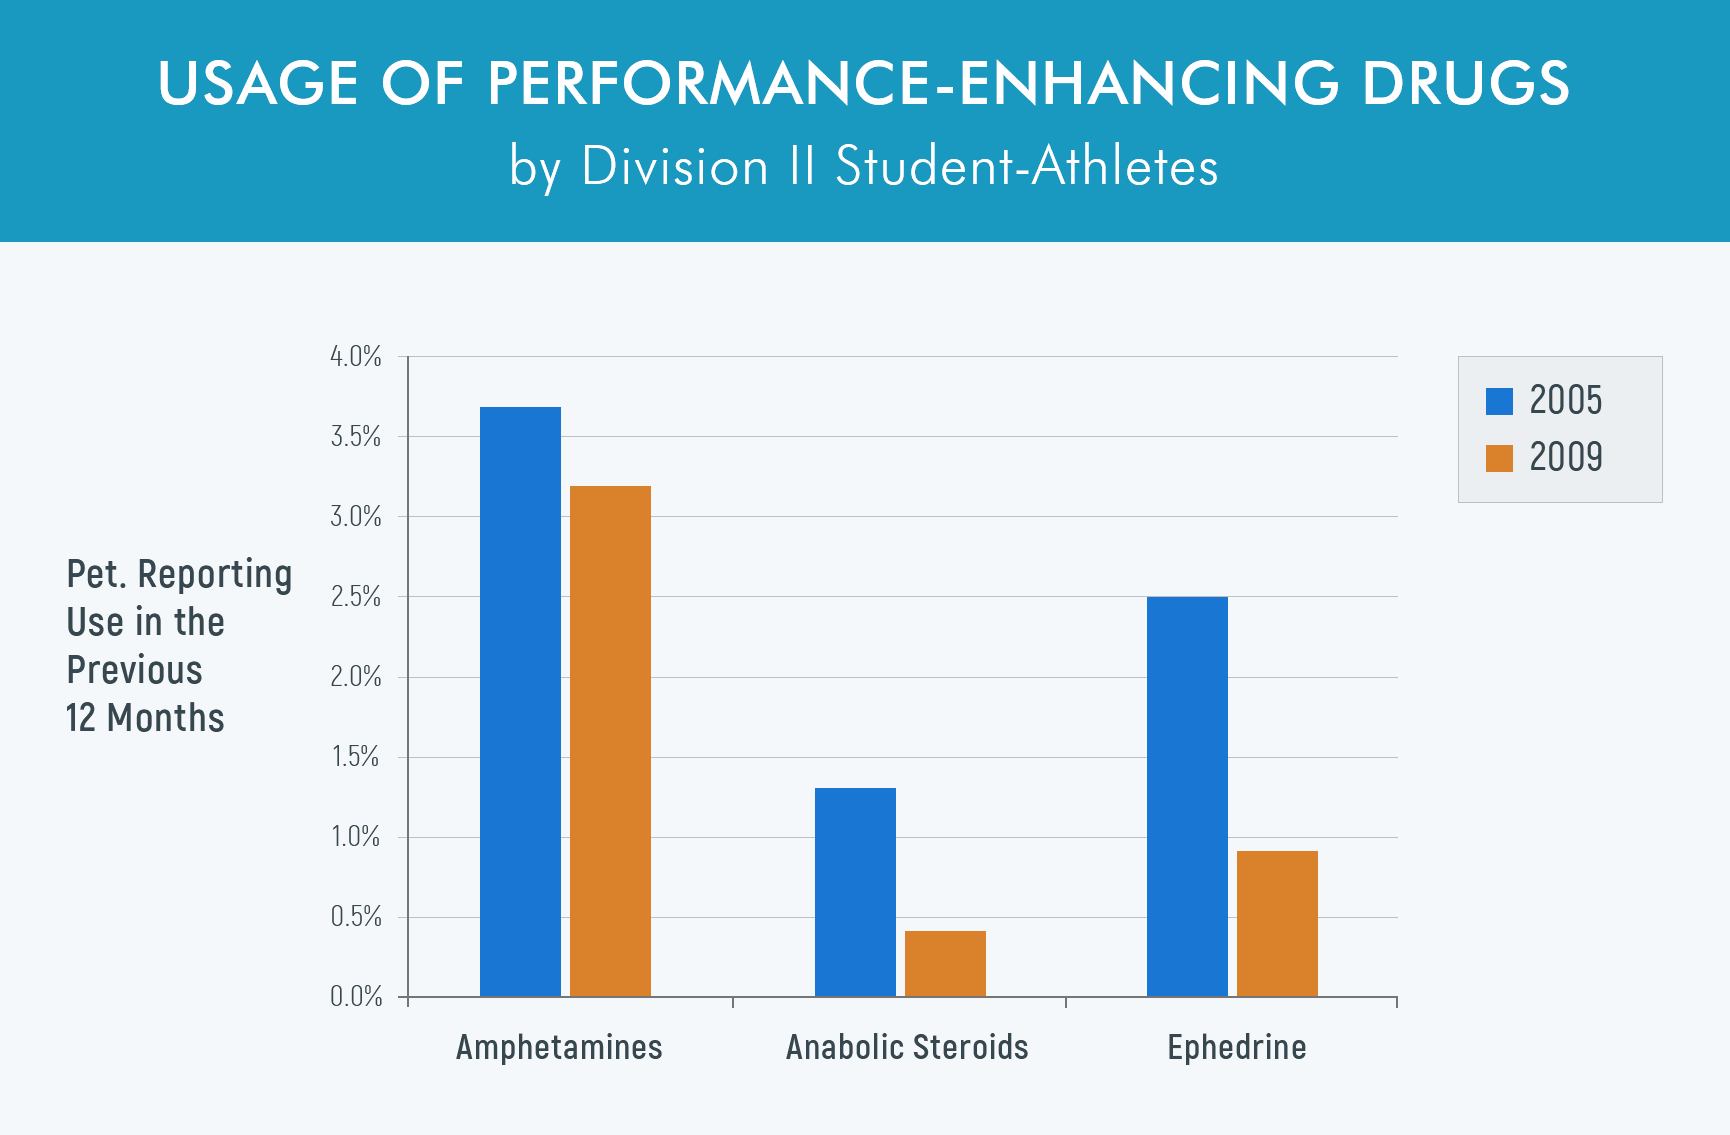 Usage of performace enhancing drugs by student athletes